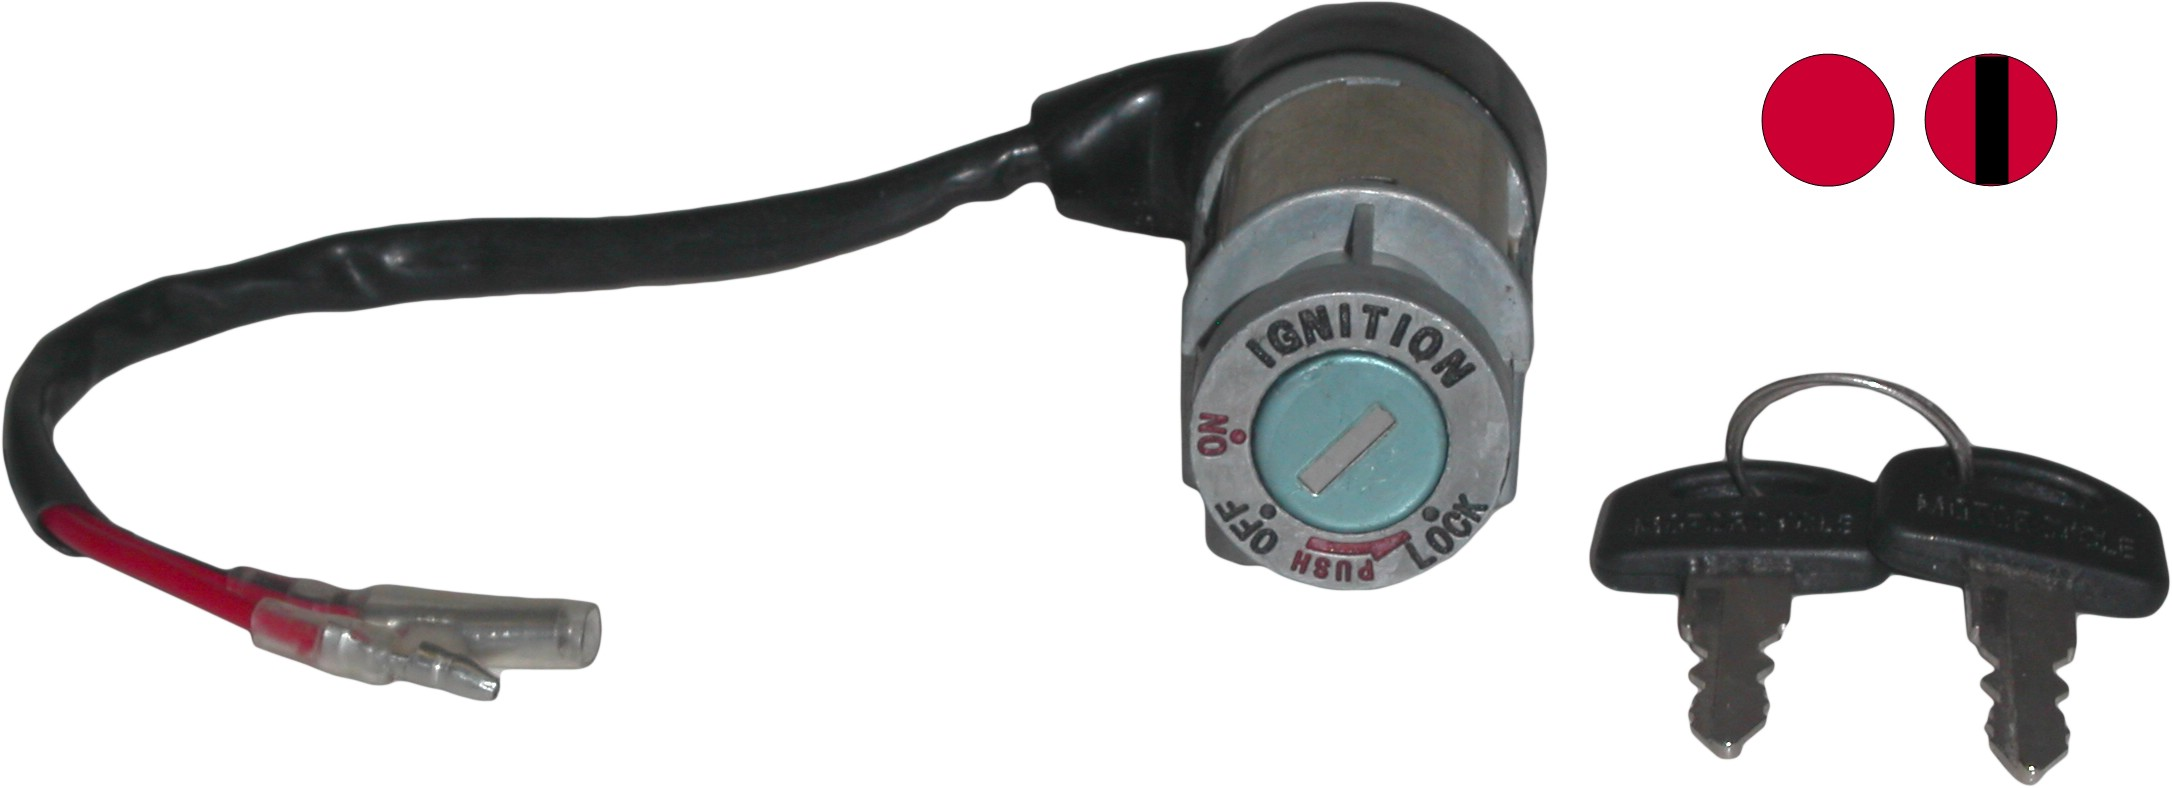 Ignition Switch Fits Honda ANF125 Innova 03-06(2 Wire) (Each) 35100 ...